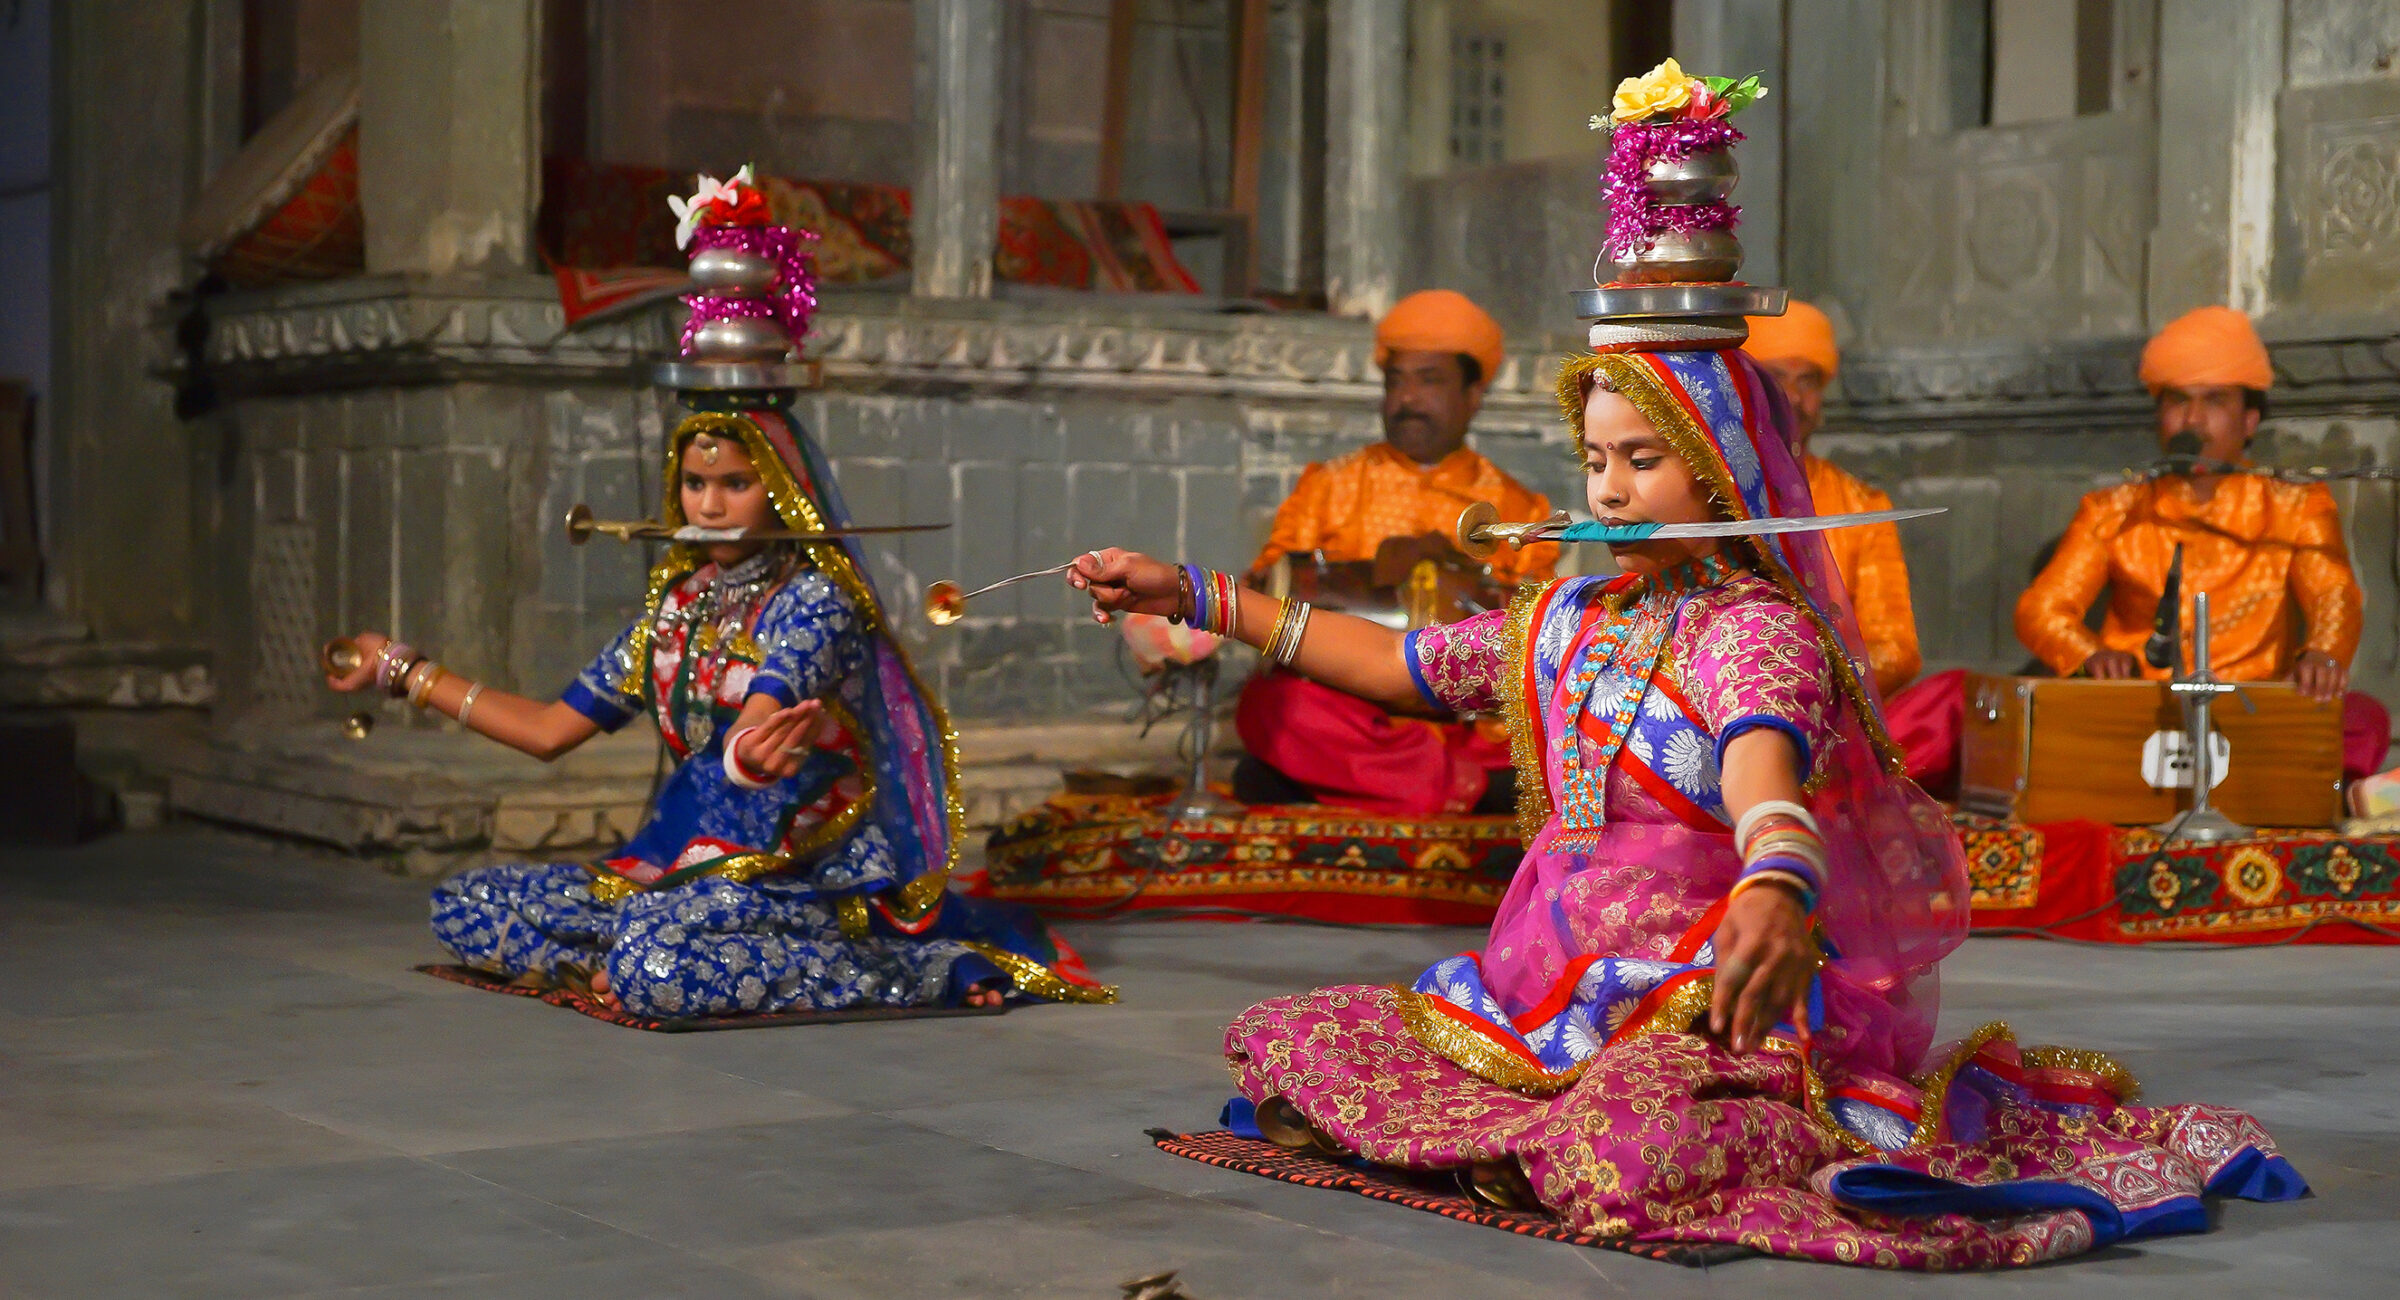 Udaipur, India - JanuaryY 29, 2014: An unidentified young indian women in sari perform dance with knifes, small metal plates and pots on heads at a traditional festival exposing local Rajasthan culture in Udaipur, India